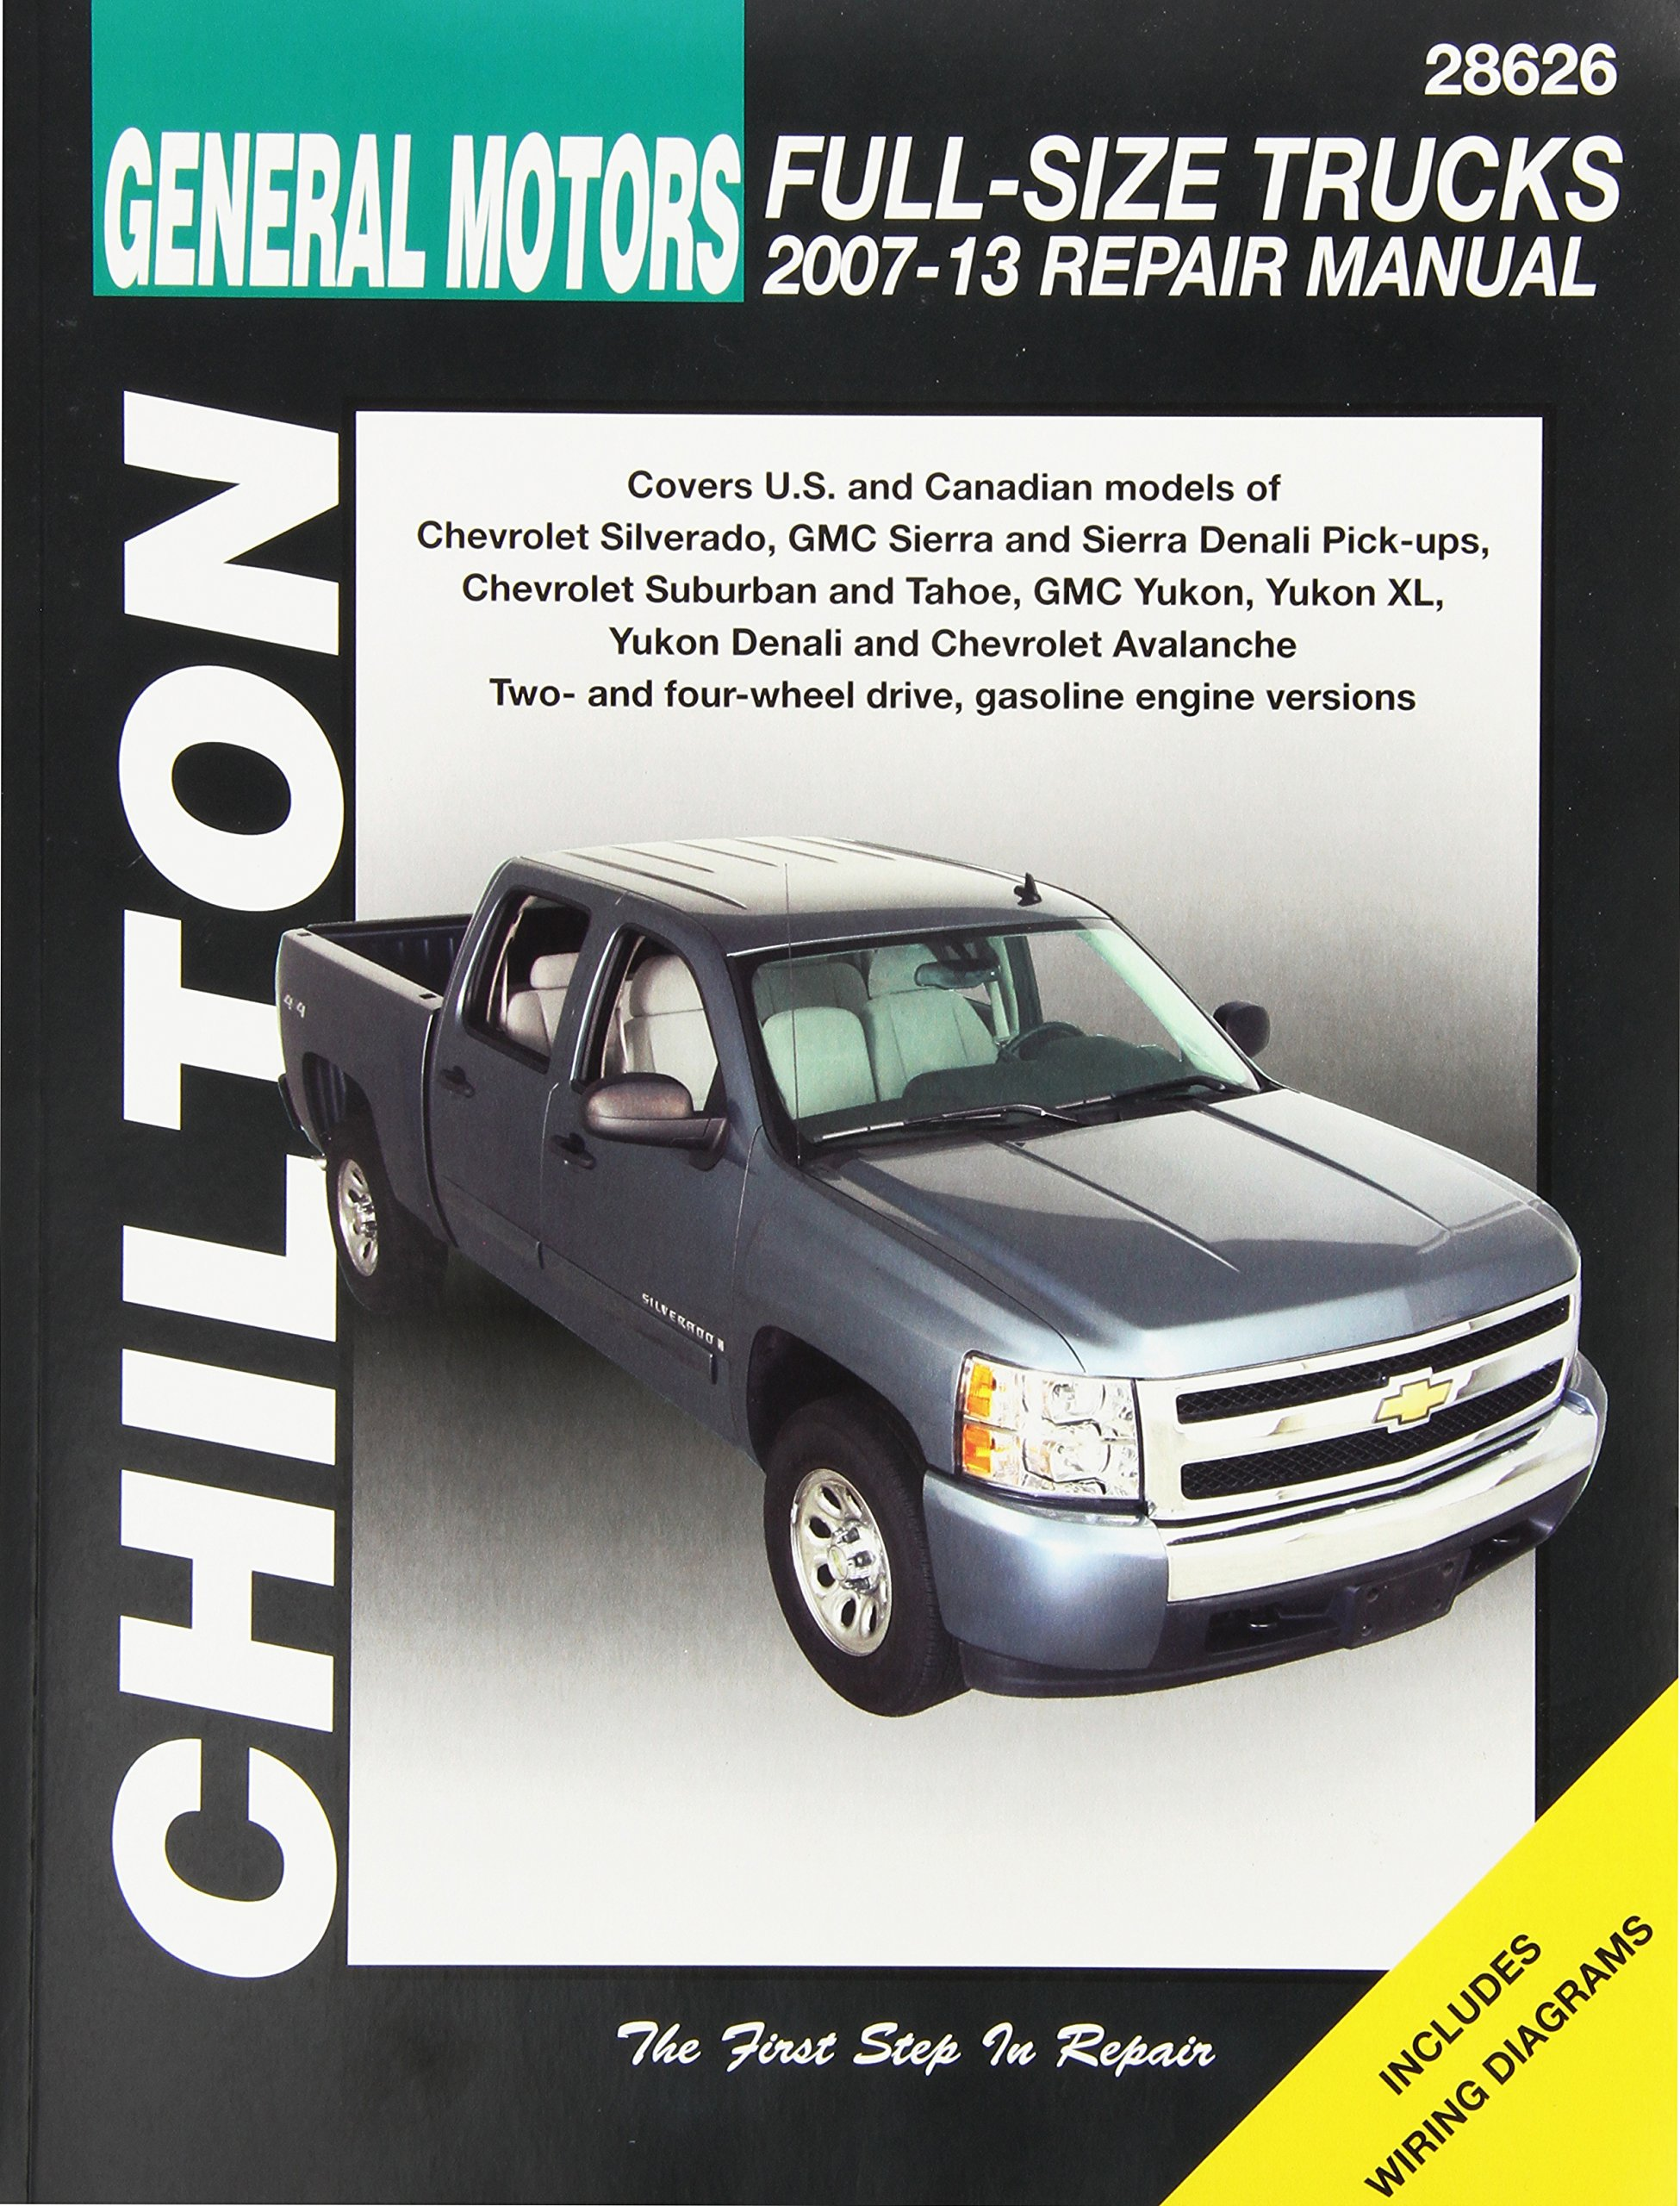 2002 Chevy Silverado 2500hd Repair Manual Various Owner Guide Chevrolet 2500 Wiring Diagram 2003 Avalanche Service Today Trends Rh Brookejasmine Co Interior